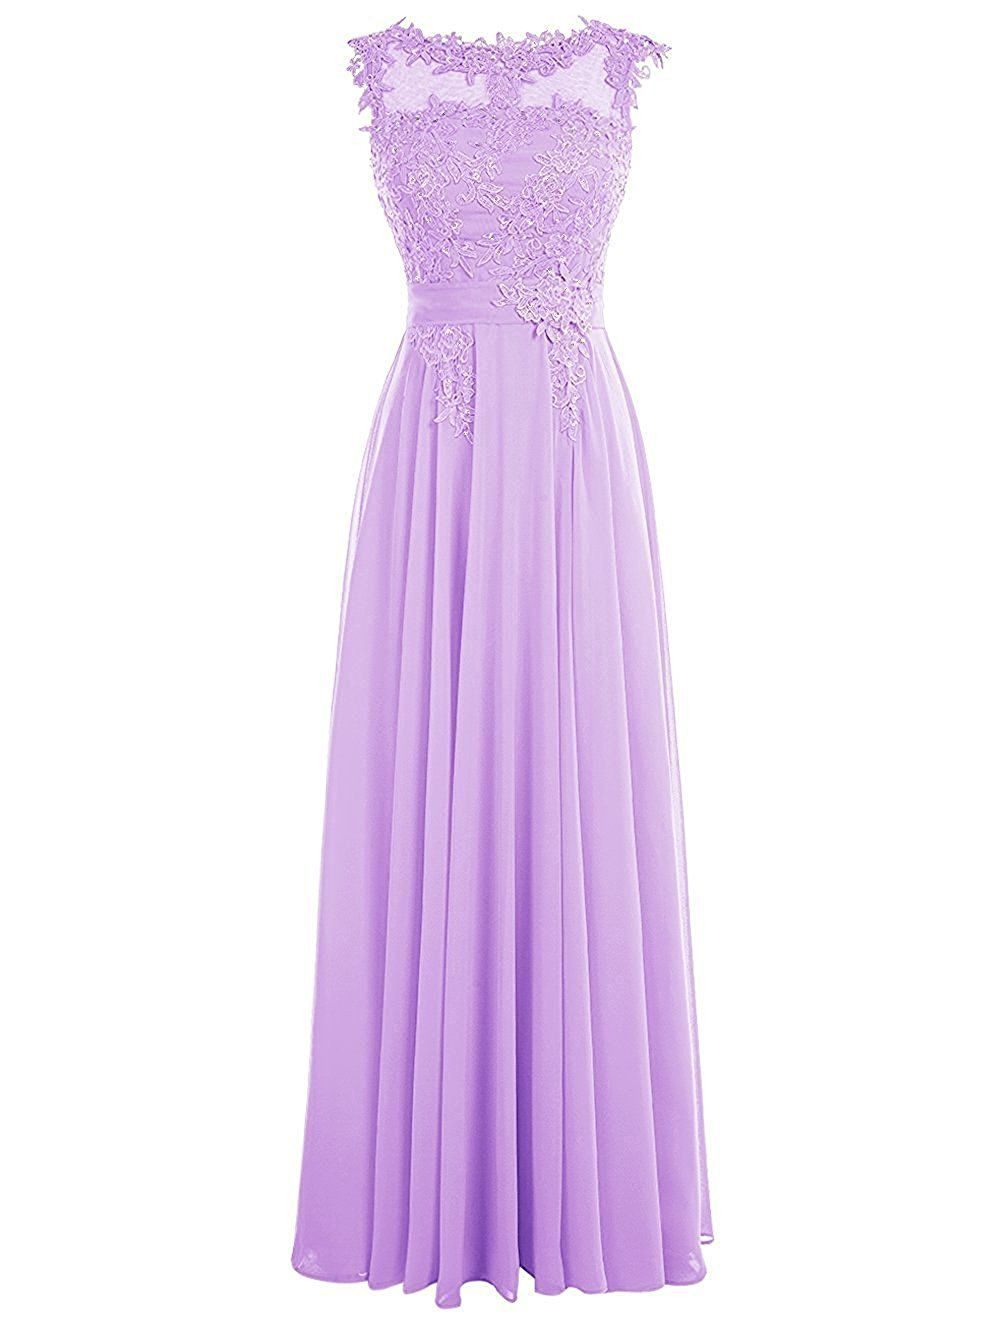 Clearbridal Women\'s Lace Applique Chiffon Prom Evening Dress Sheer ...